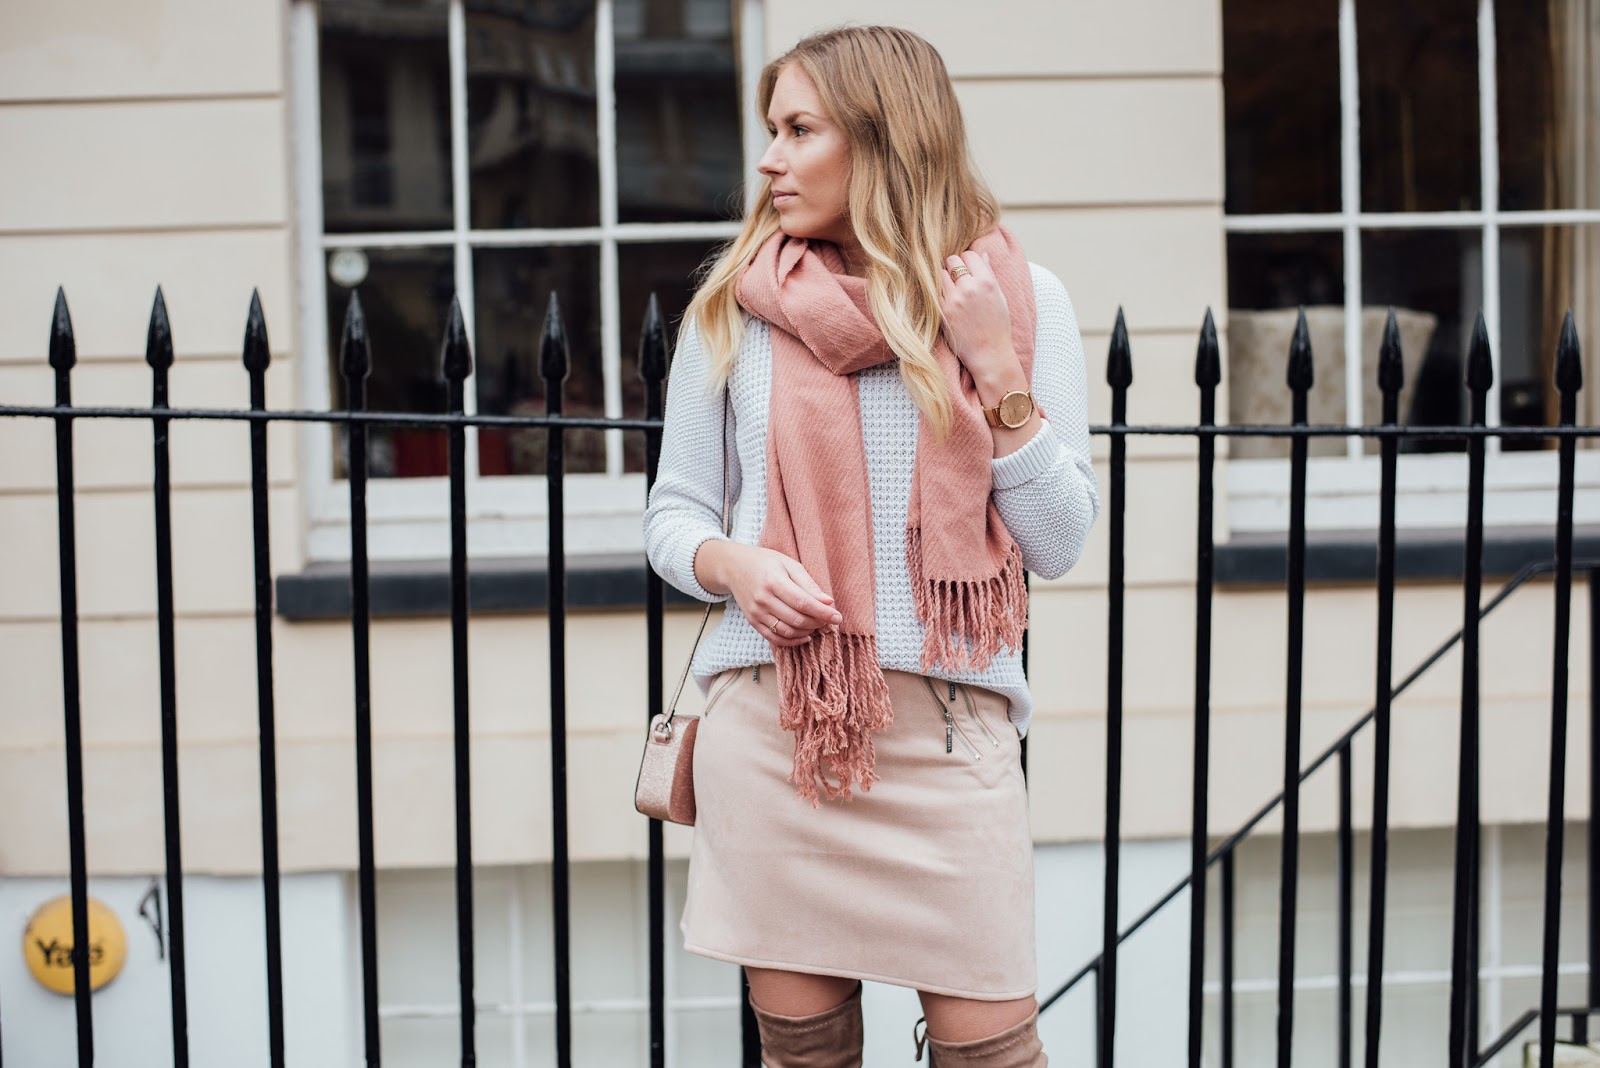 Rachel Emily Wearing Winter Pink Outfit and Looking Left infront of White Clifton Bristol Houses with Railings